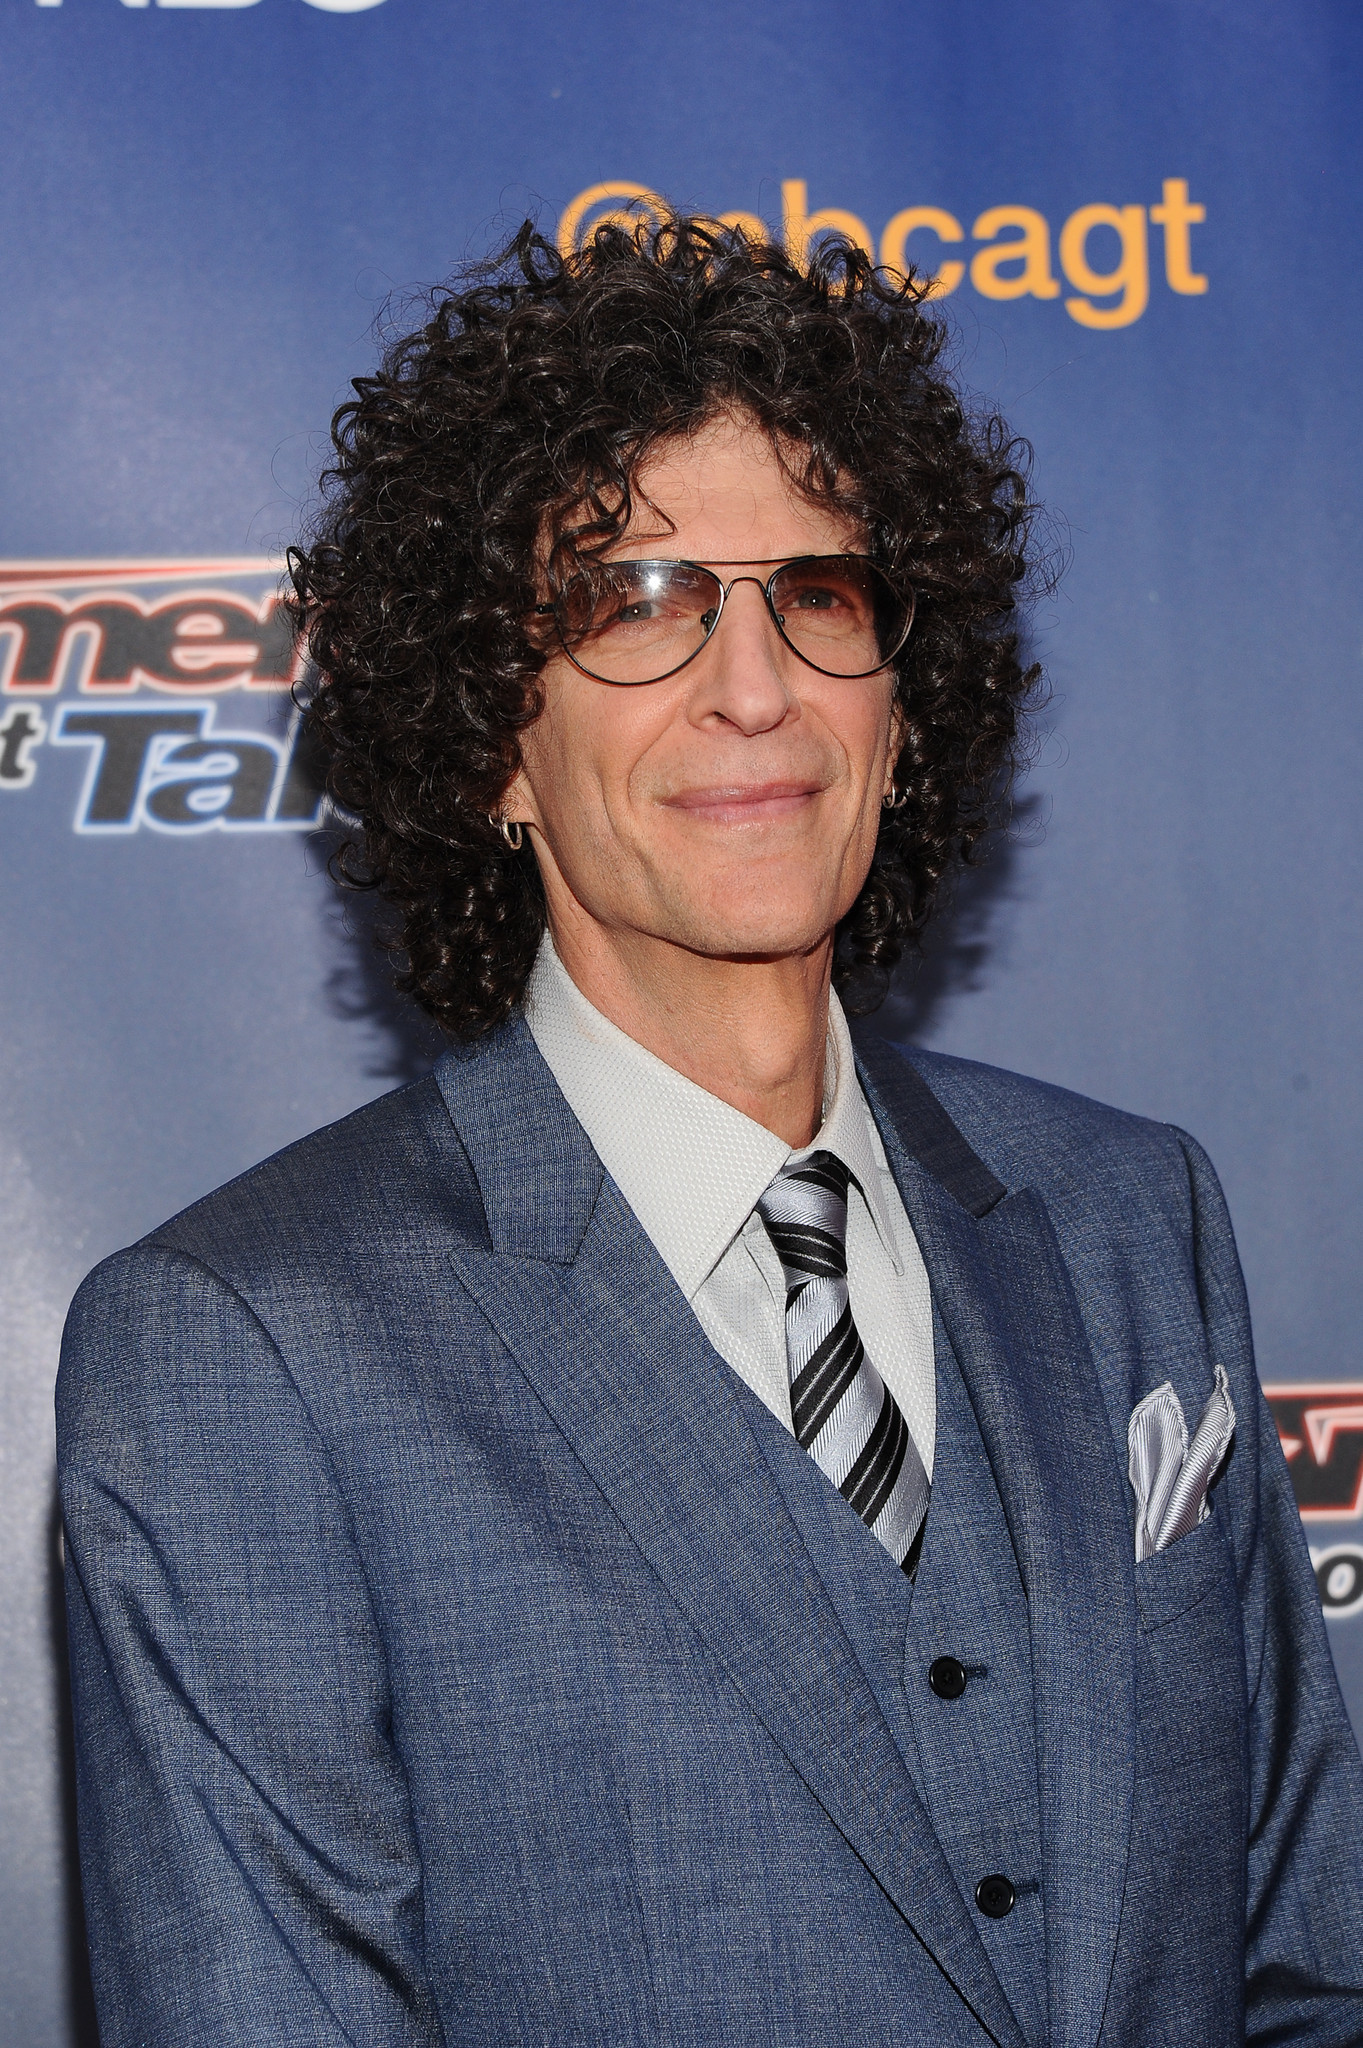 Howard Stern Sets New Five Year Deal With Sirius Xm